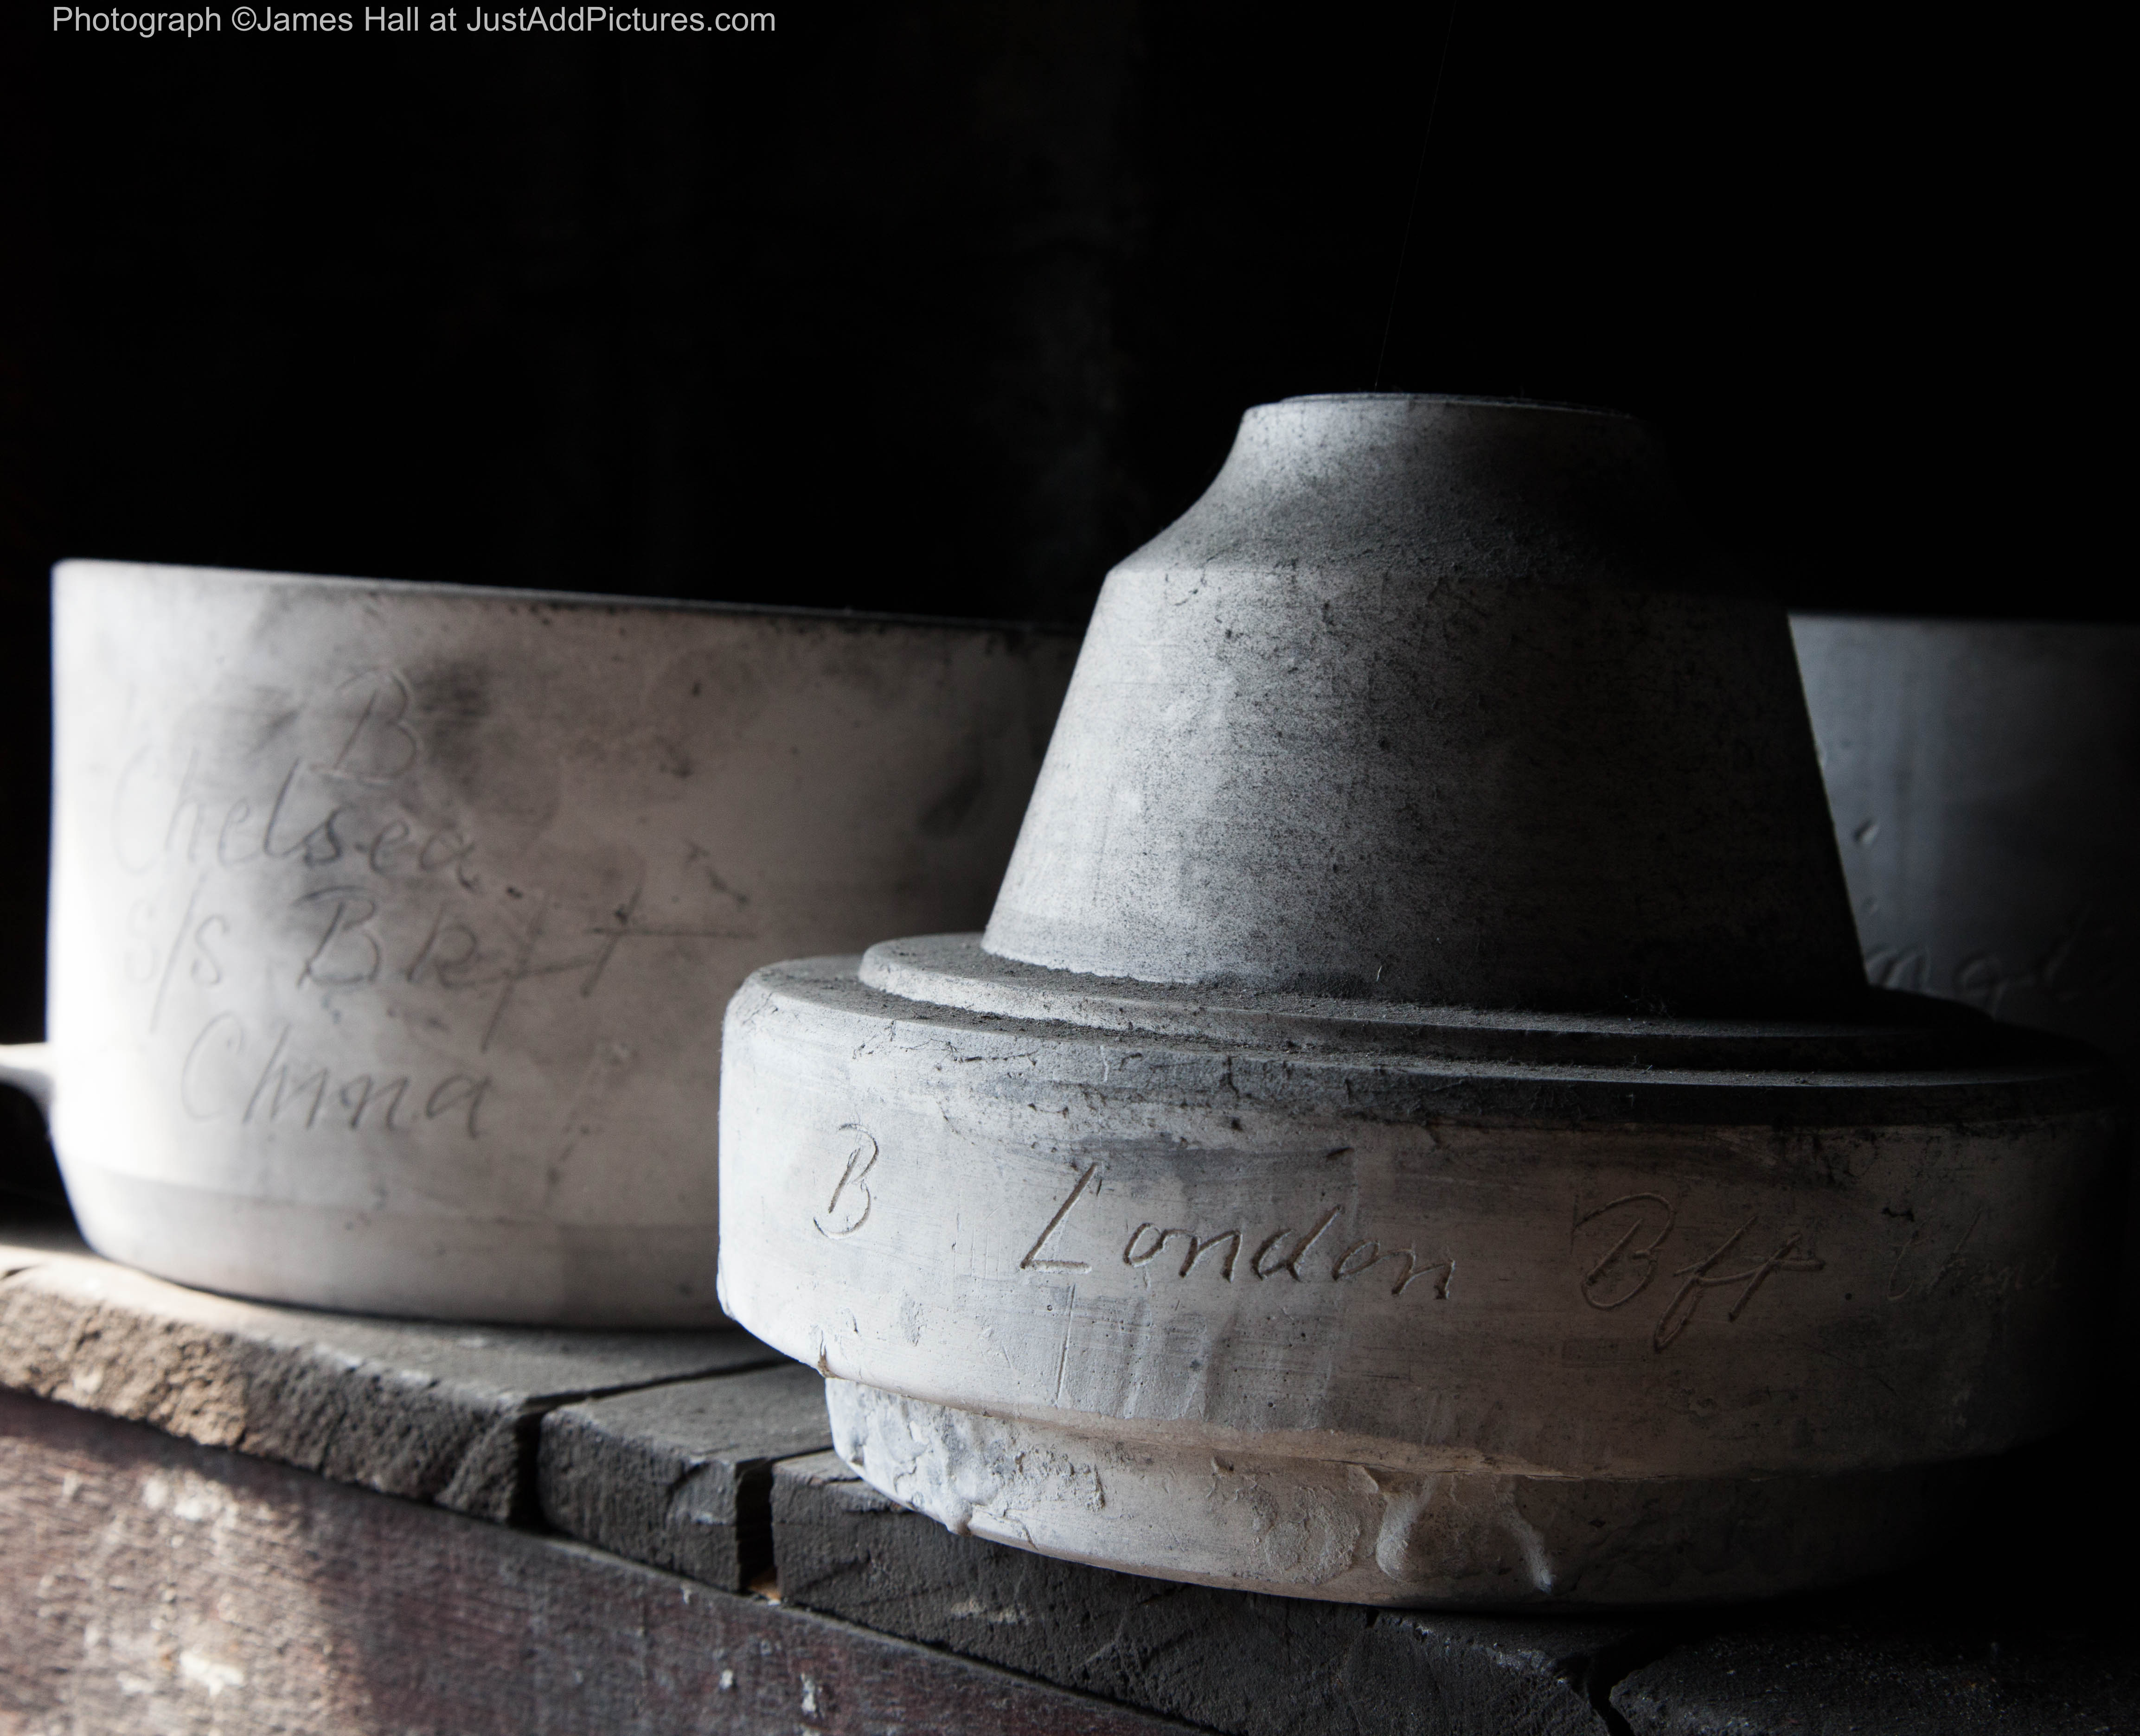 A close up of pottery moulds